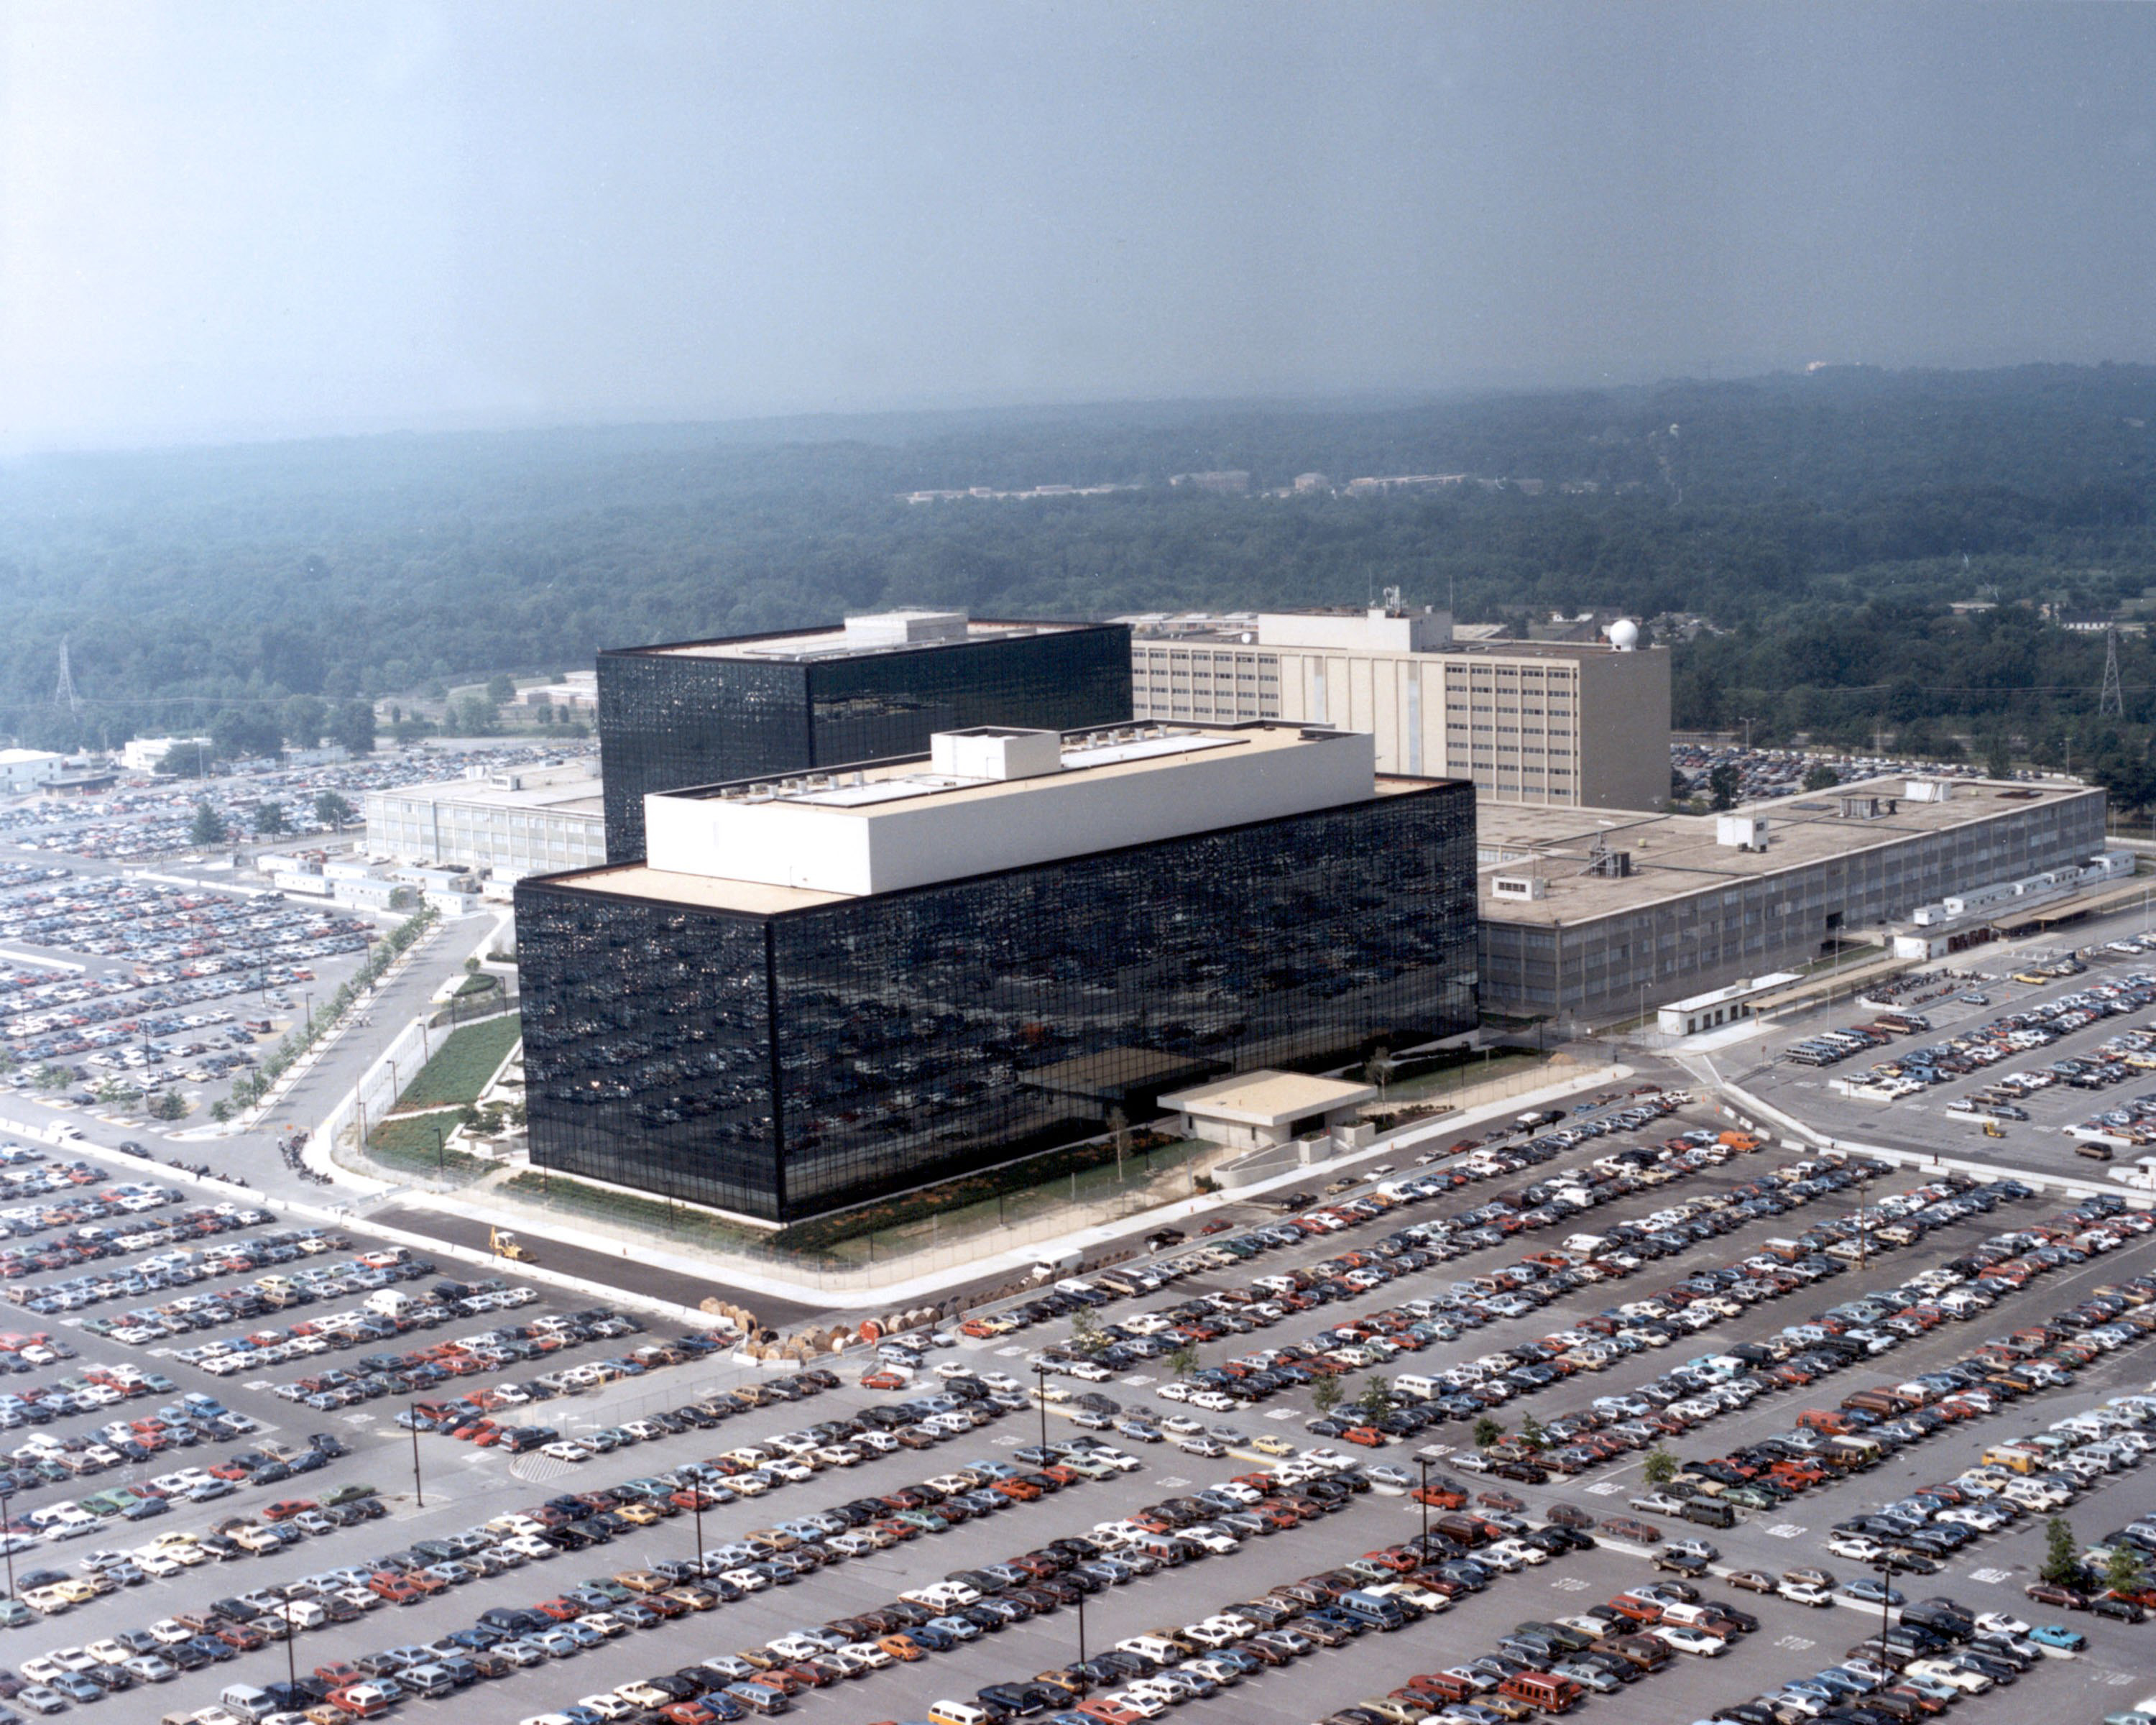 This undated photo provided by the National Security Agency (NSA) shows its headquarters in Fort Meade, Md.